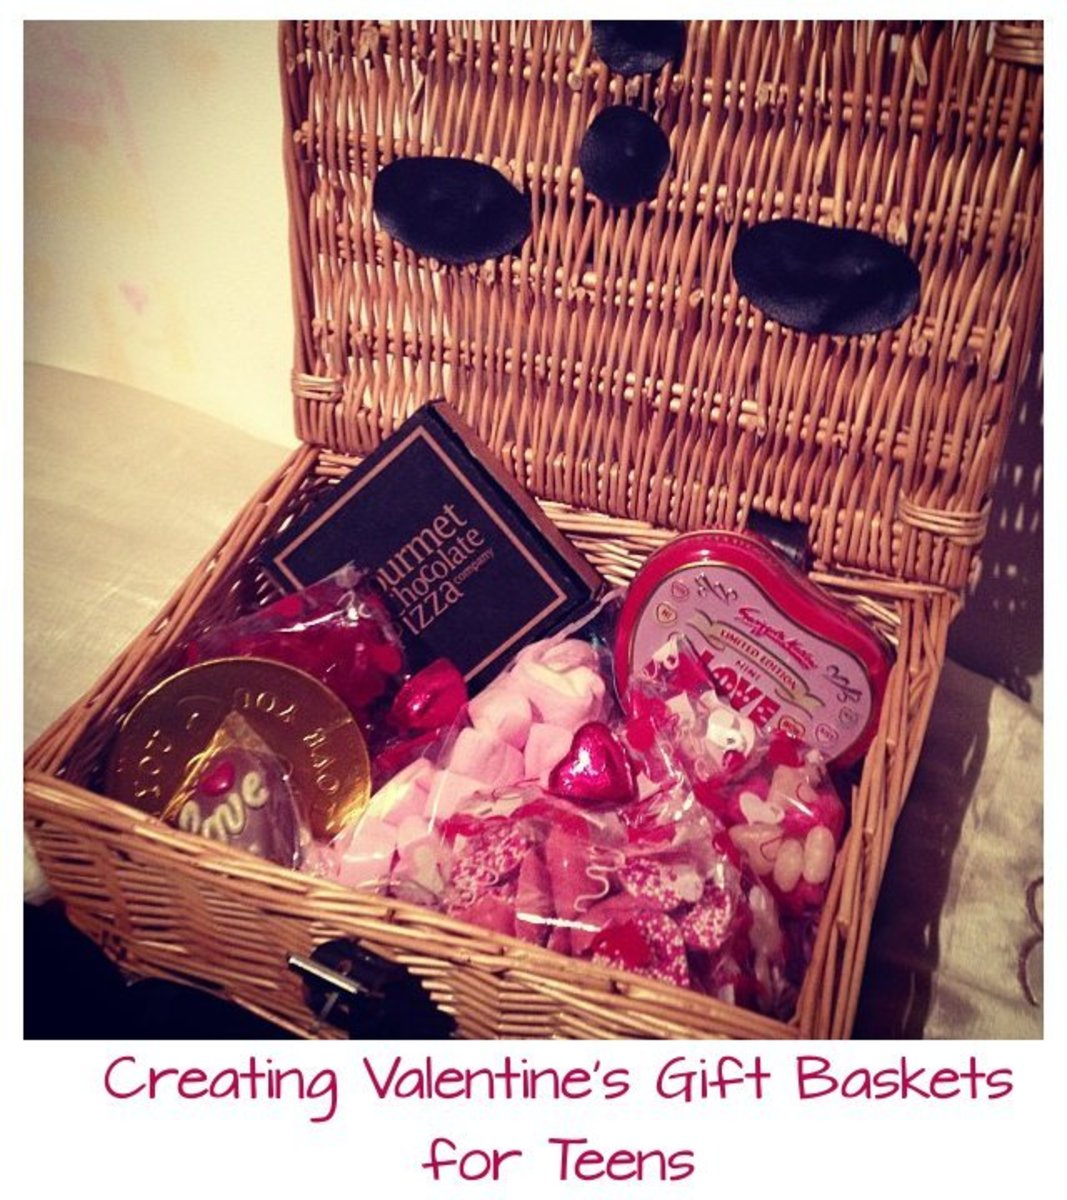 How to Create a Cute Valentine's Gift Basket for Teen Girls